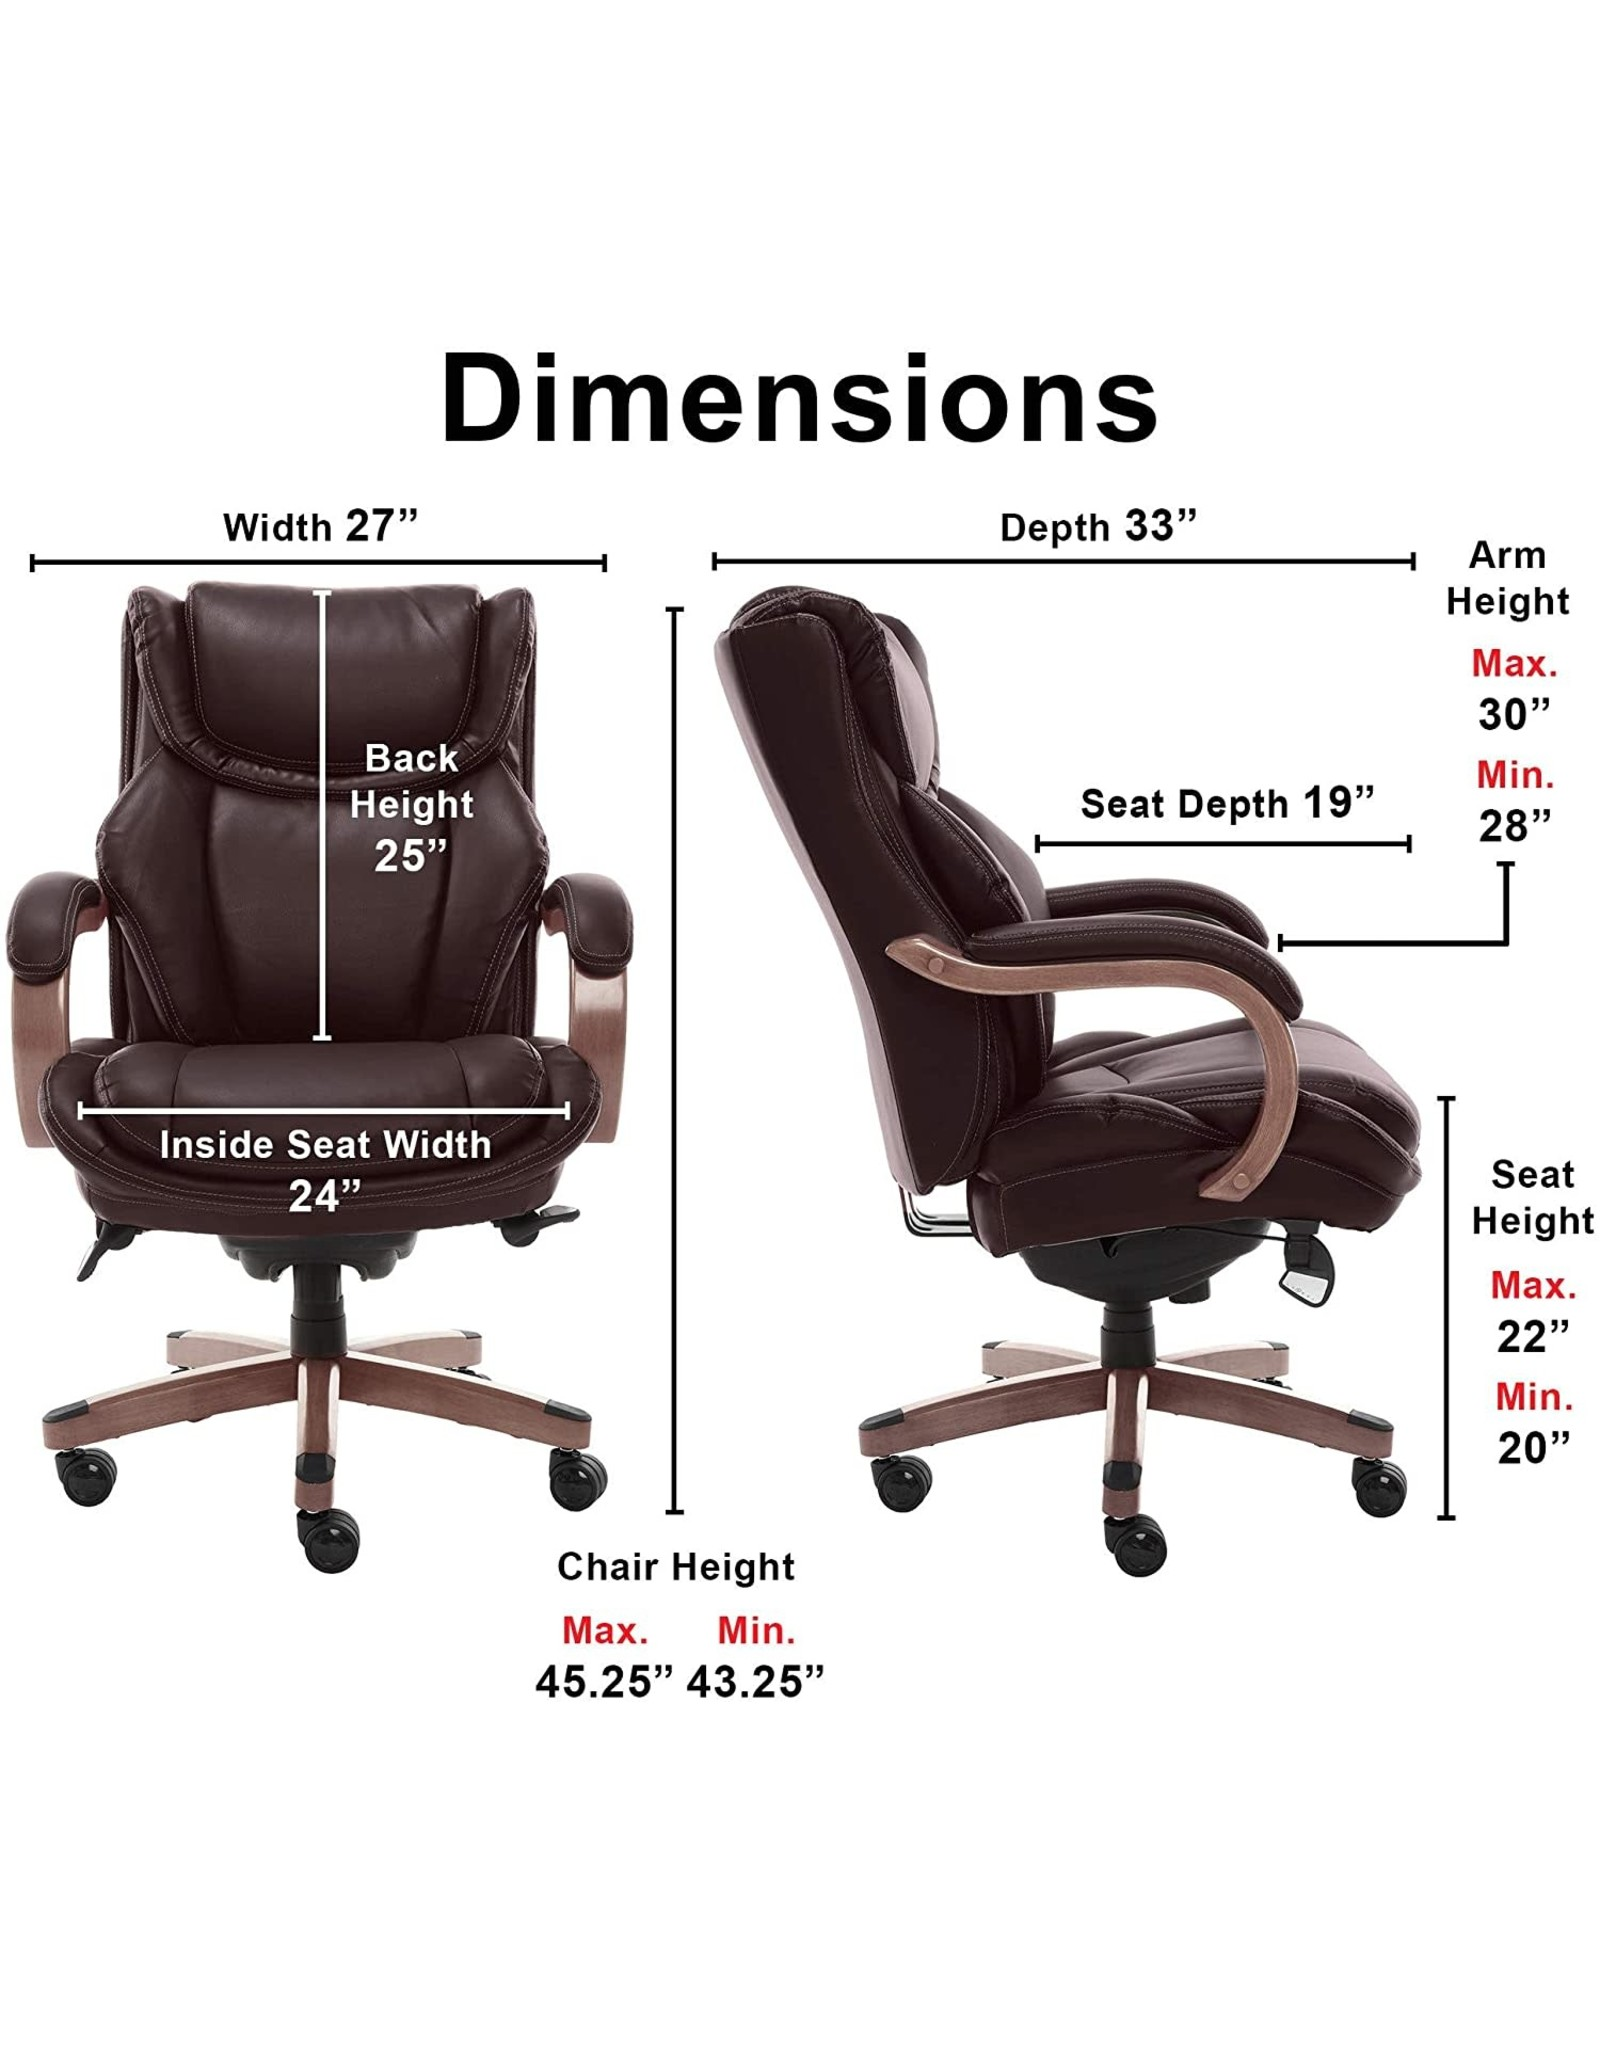 La-Z-Boy LaZBoy Big & Tall Executive Office Comfort Core Cushions, Ergonomic High-Back Chair with Solid Wood Arms, Bonded Leather, Coffee Brown